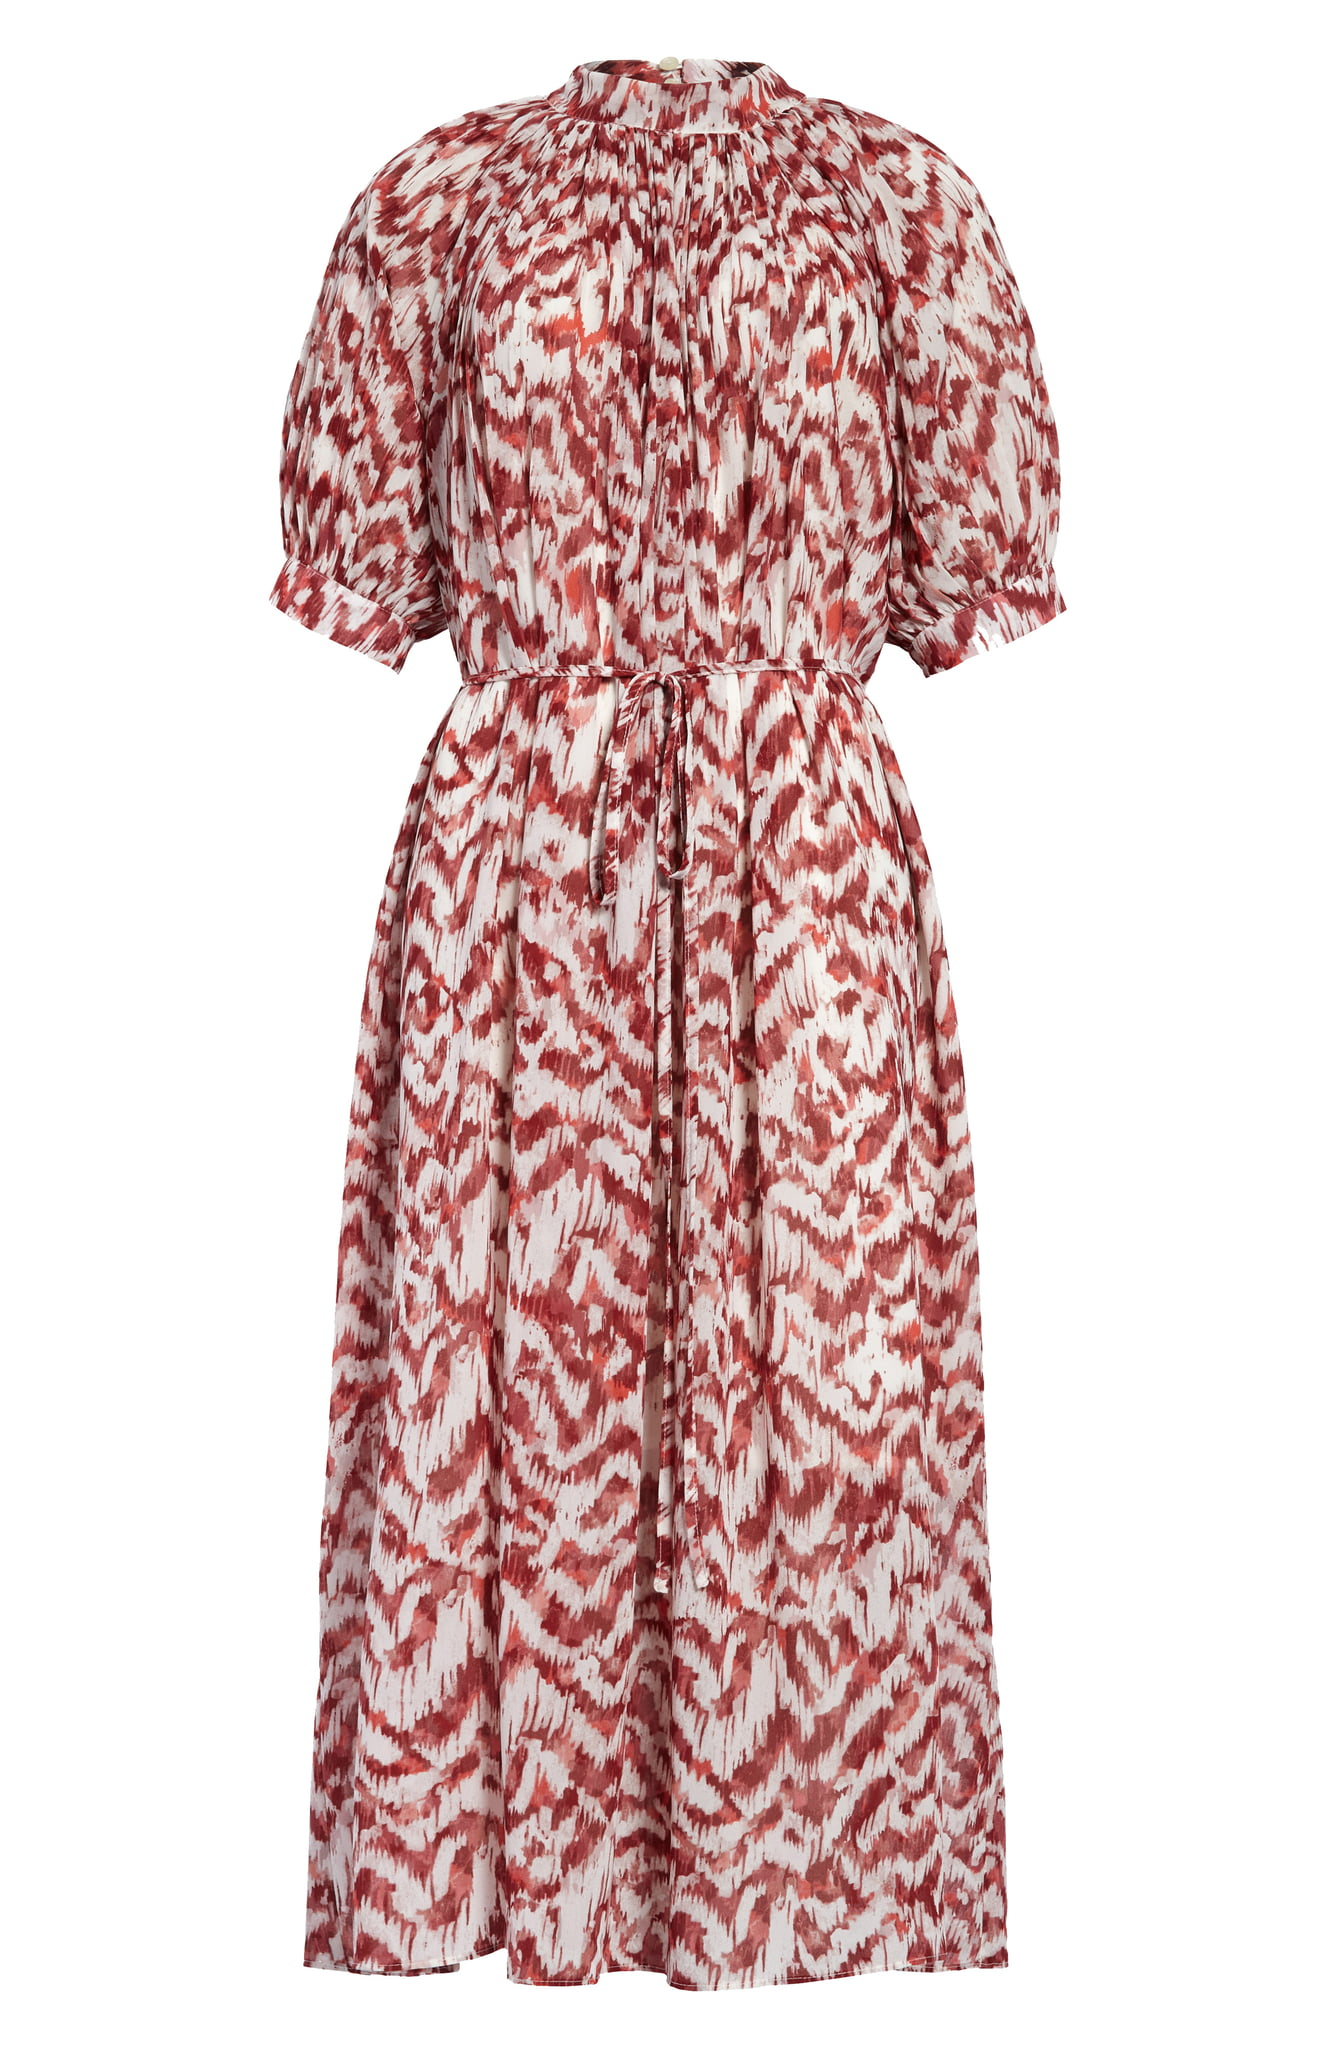 "Perfect for those Zoom calls, or maybe you get to leave the house? Make those grocery store runs looks extra good in this{&nbsp;}<a  href=""https://www.nordstrom.com/s/maggy-london-puff-sleeve-pleated-midi-dress/5606683?origin=keywordsearch-personalizedsort&breadcrumb=Home%2FAll%20Results&color=soft%20white%2F%20raisin"" target=""_blank"" title=""https://www.nordstrom.com/s/maggy-london-puff-sleeve-pleated-midi-dress/5606683?origin=keywordsearch-personalizedsort&breadcrumb=Home%2FAll%20Results&color=soft%20white%2F%20raisin"">Maggy London Pleated Puff Sleve Midi!{&nbsp;}</a>$99.90 (after sale $164) (Image: Nordstrom)"